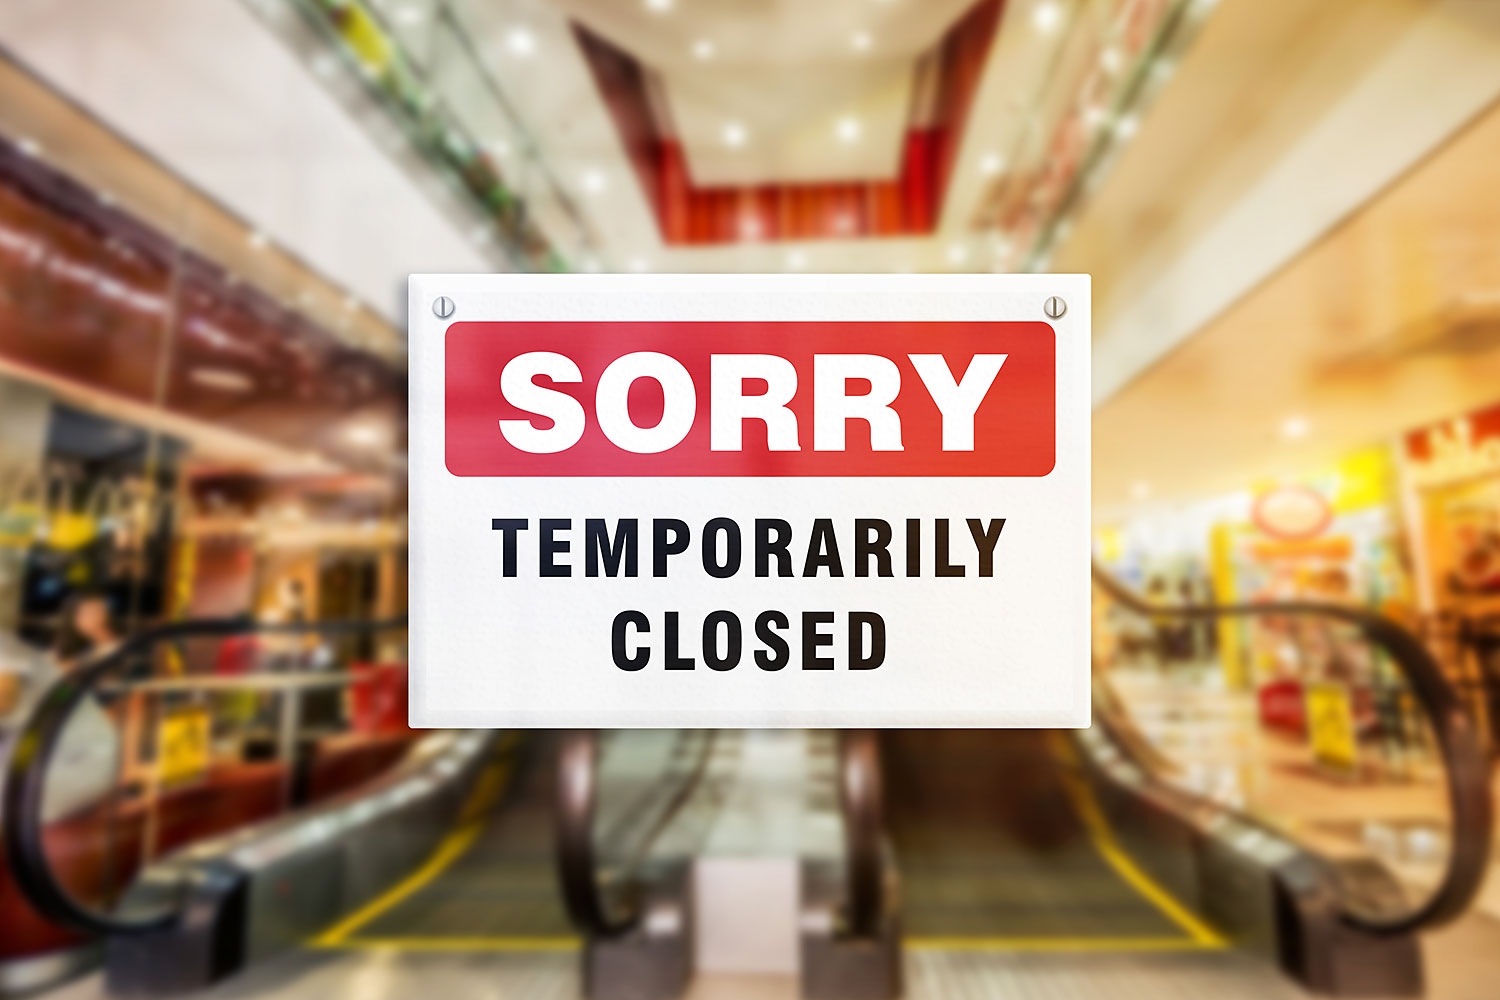 How employers can temporarily shut down their businesses to weather the COVID-19 situation